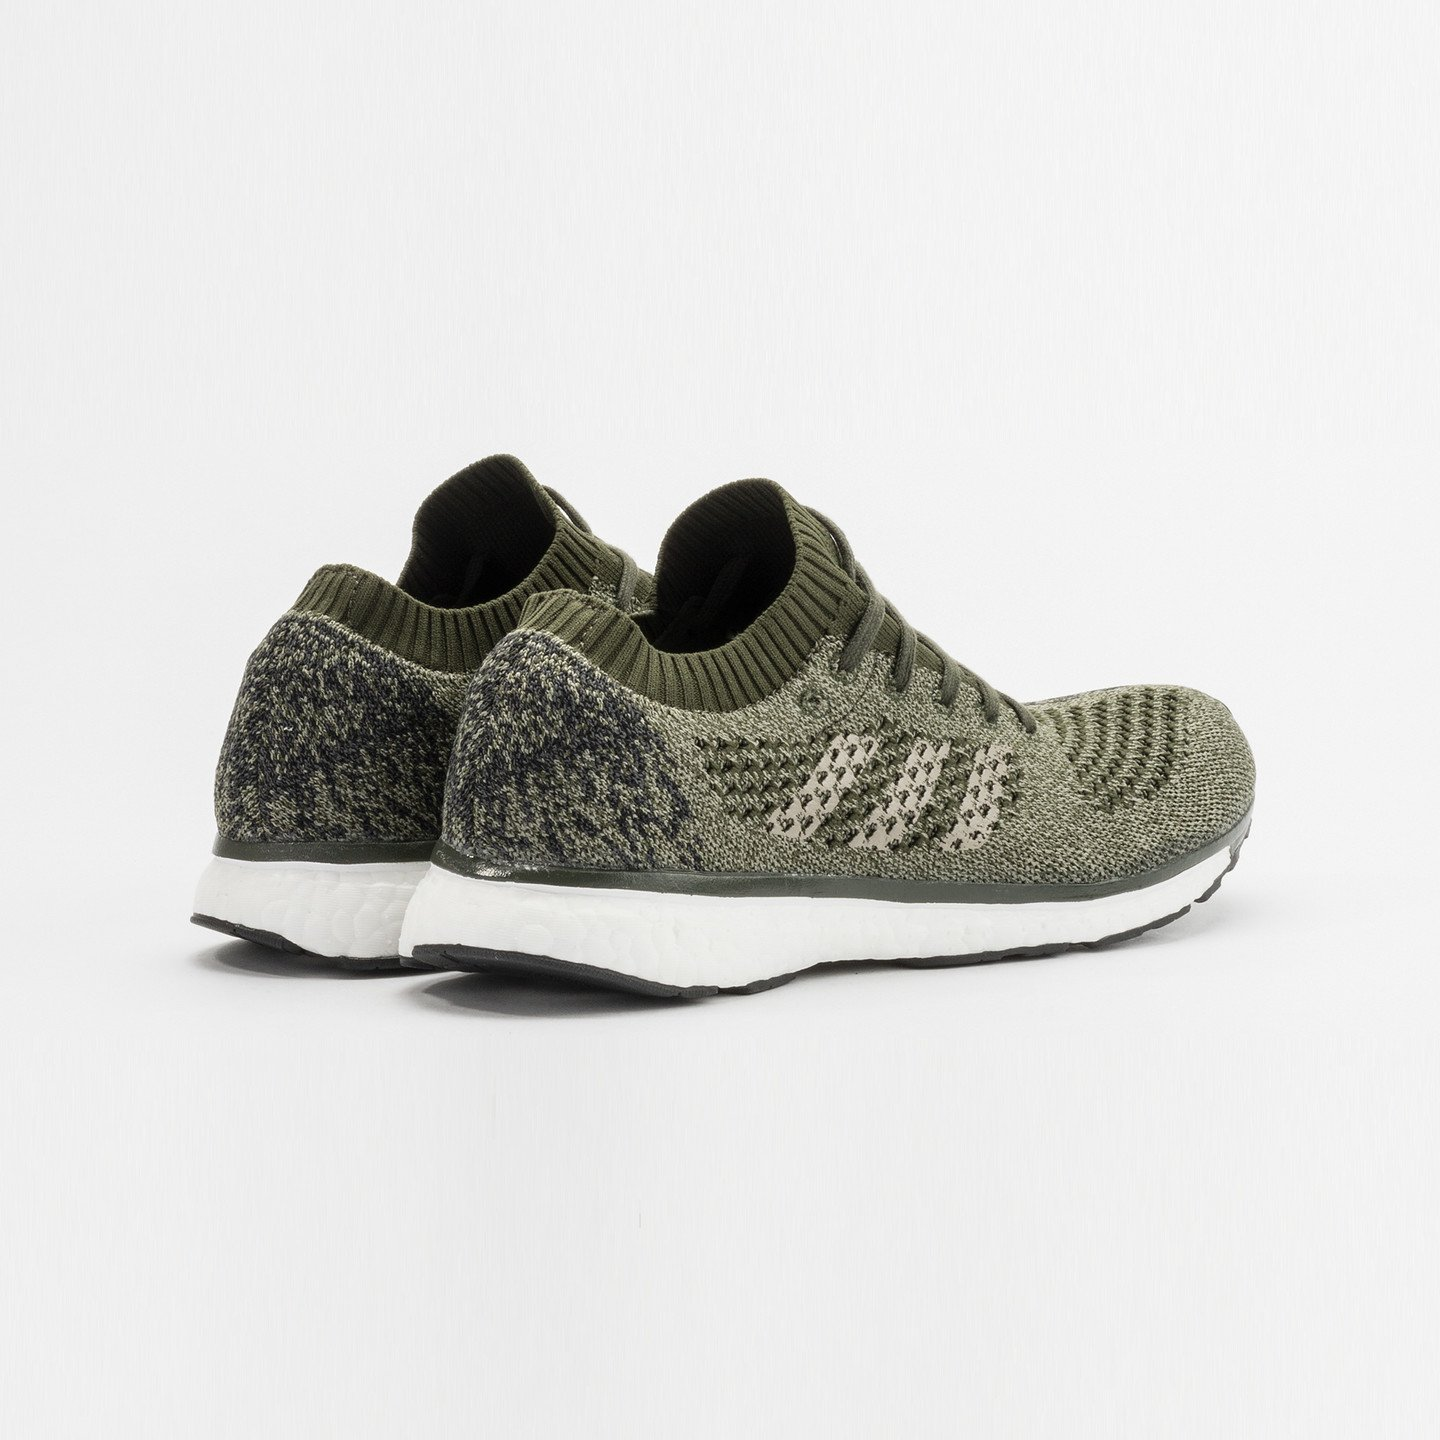 Adidas Adizero Prime LTD Night Cargo / Core Black BA7936